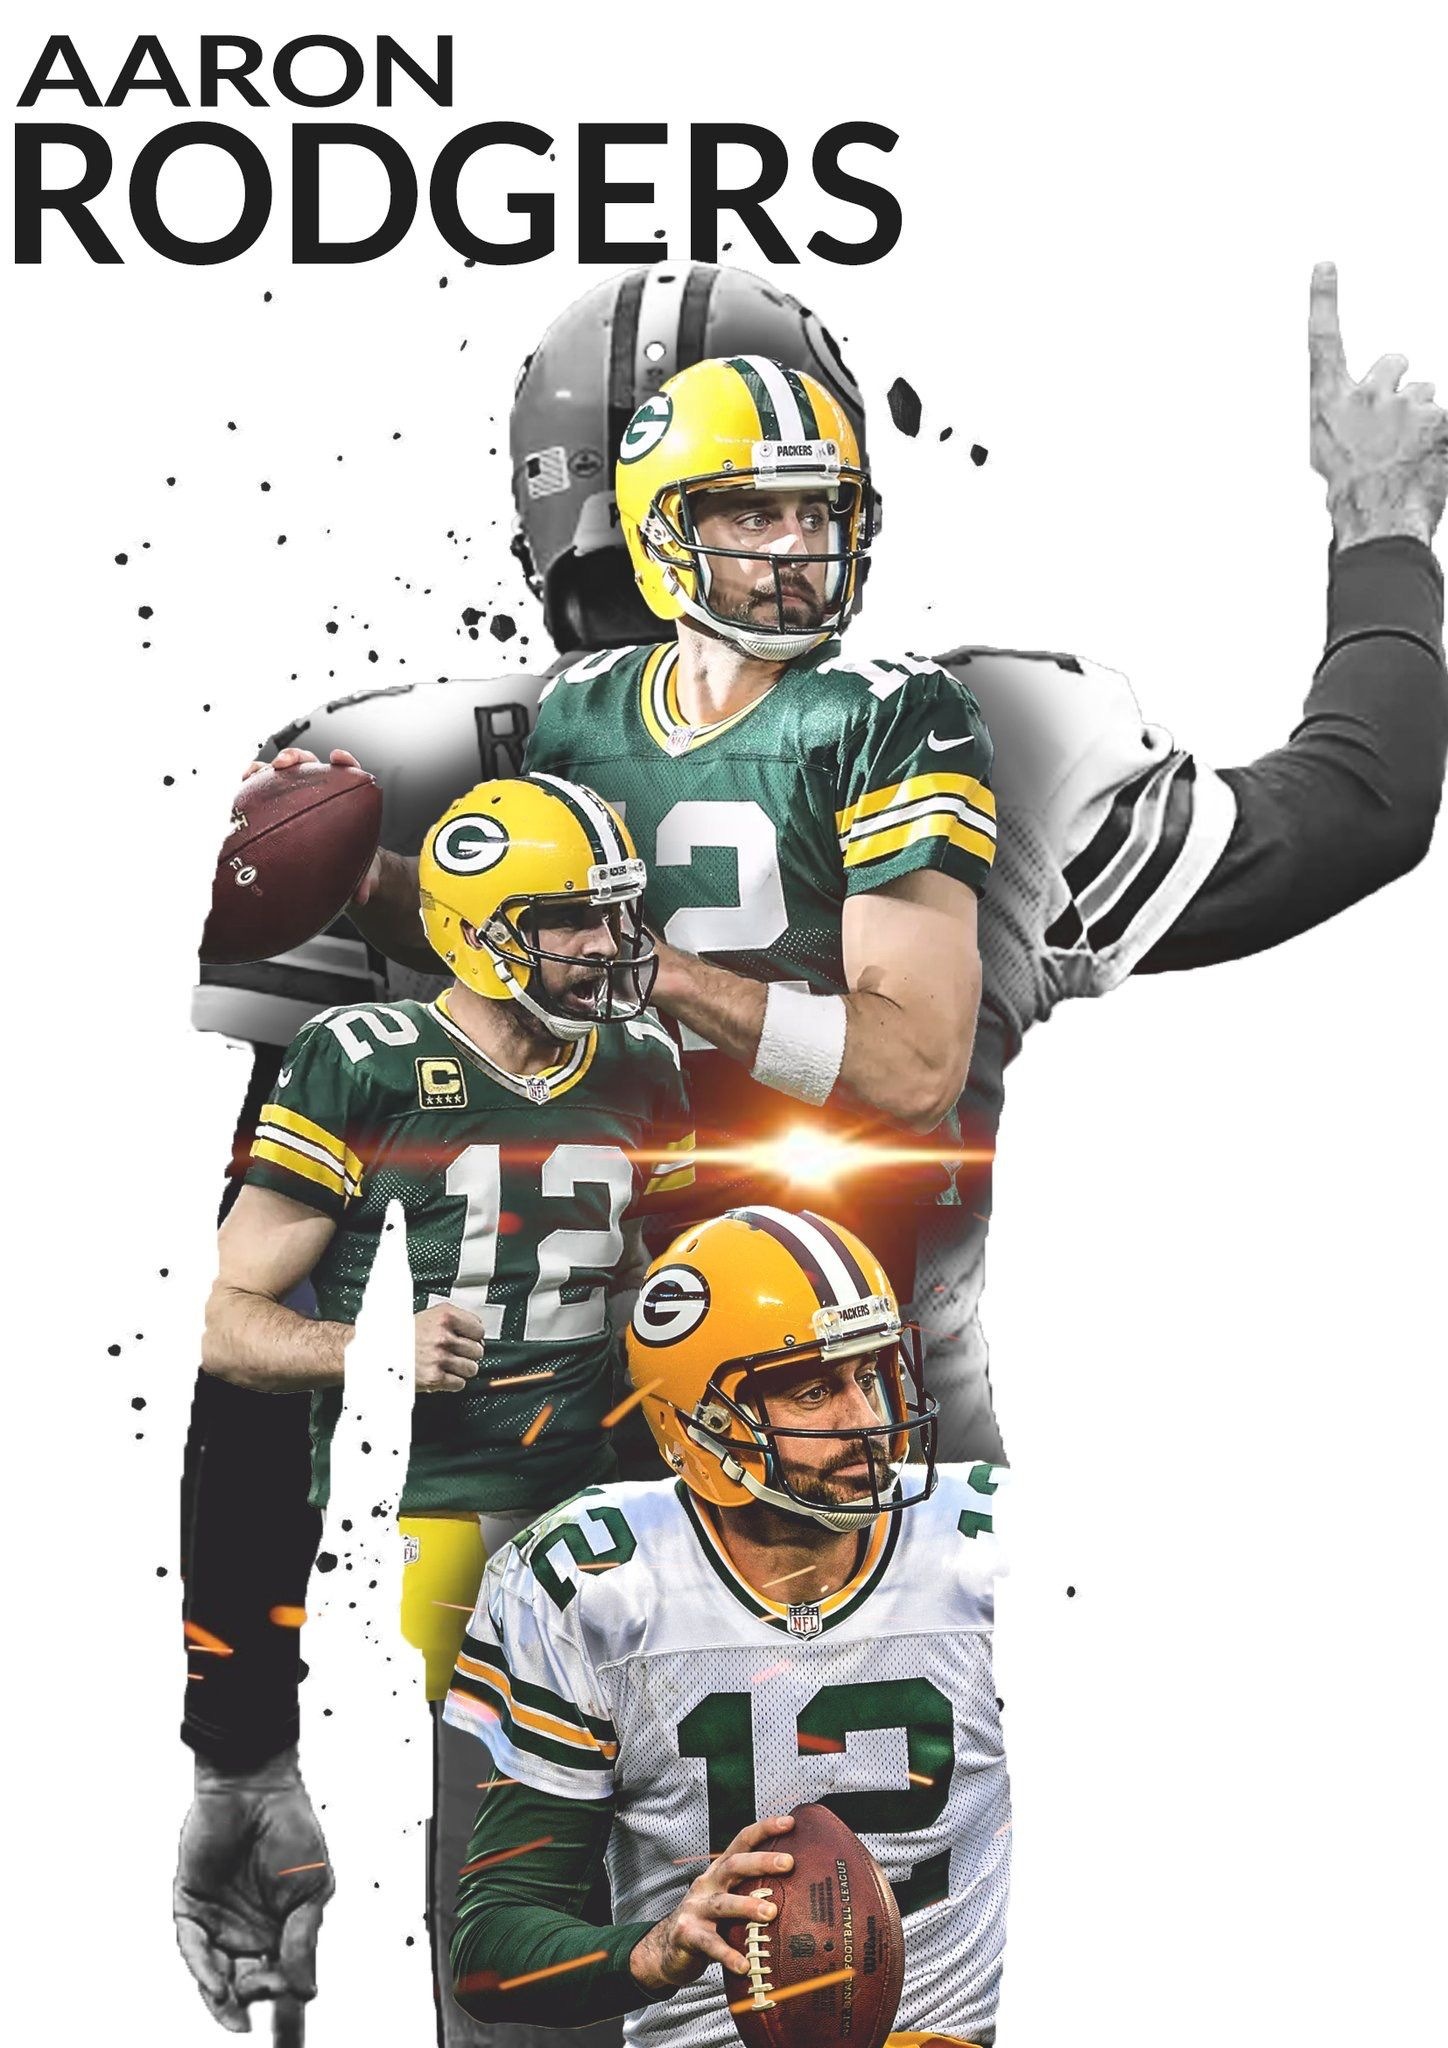 Pin By Eric Katsma On Green Bay Packers Part 1 Green Bay Packers Art Green Bay Packers Meme Green Bay Packers Aaron Rodgers